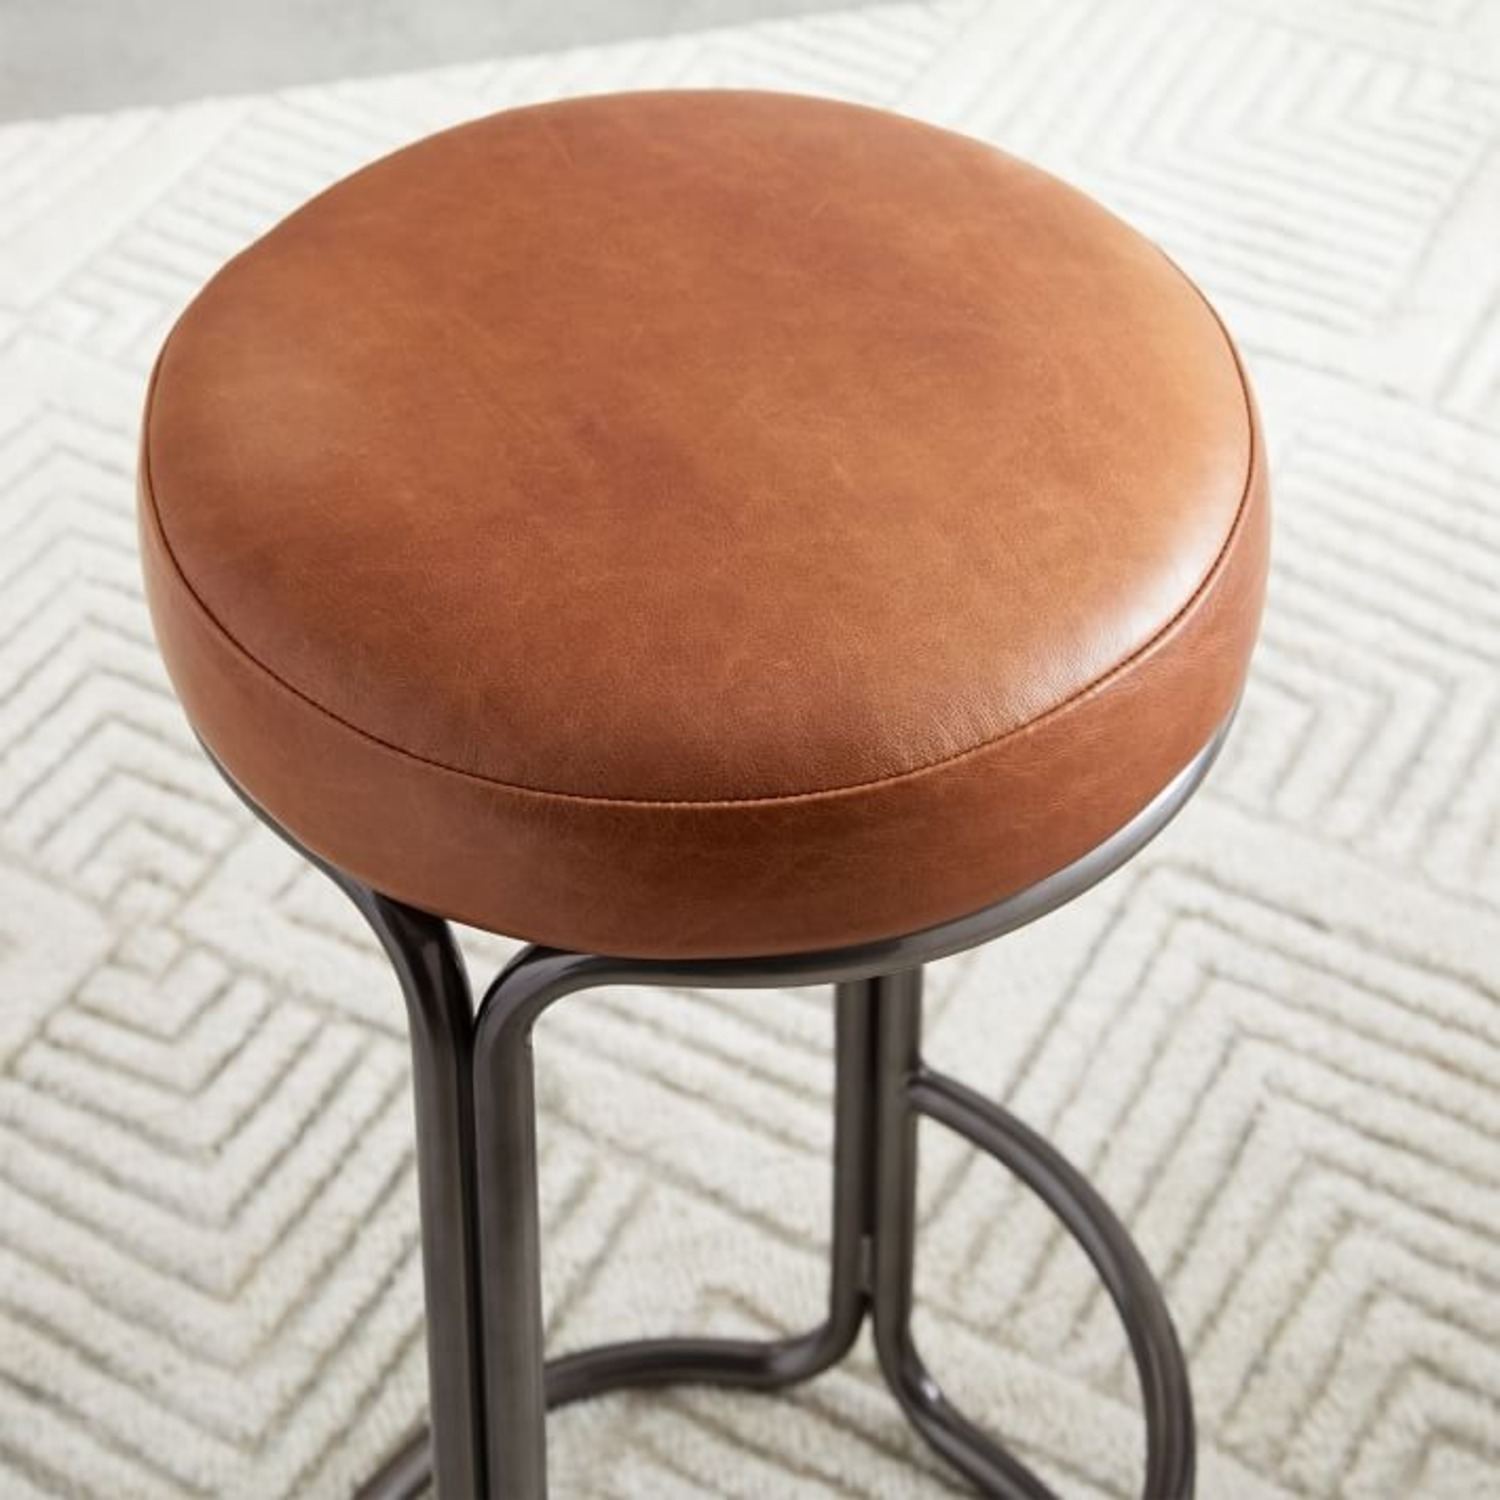 West Elm Cora Leather Counter Stool - image-1